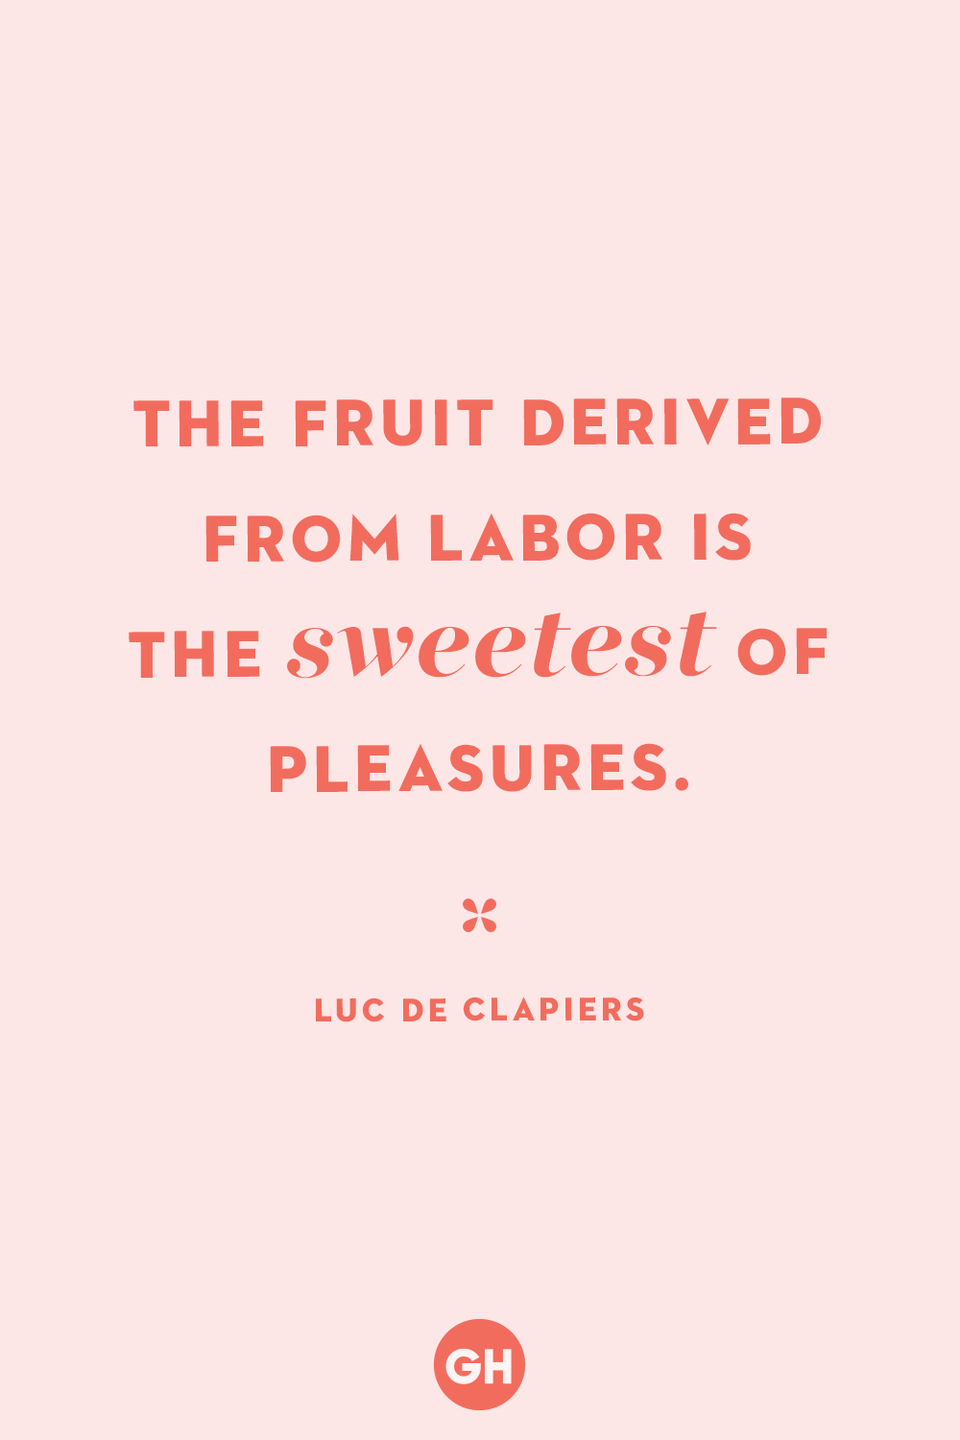 <p>The fruit derived from labor is the sweetest of pleasures.</p>